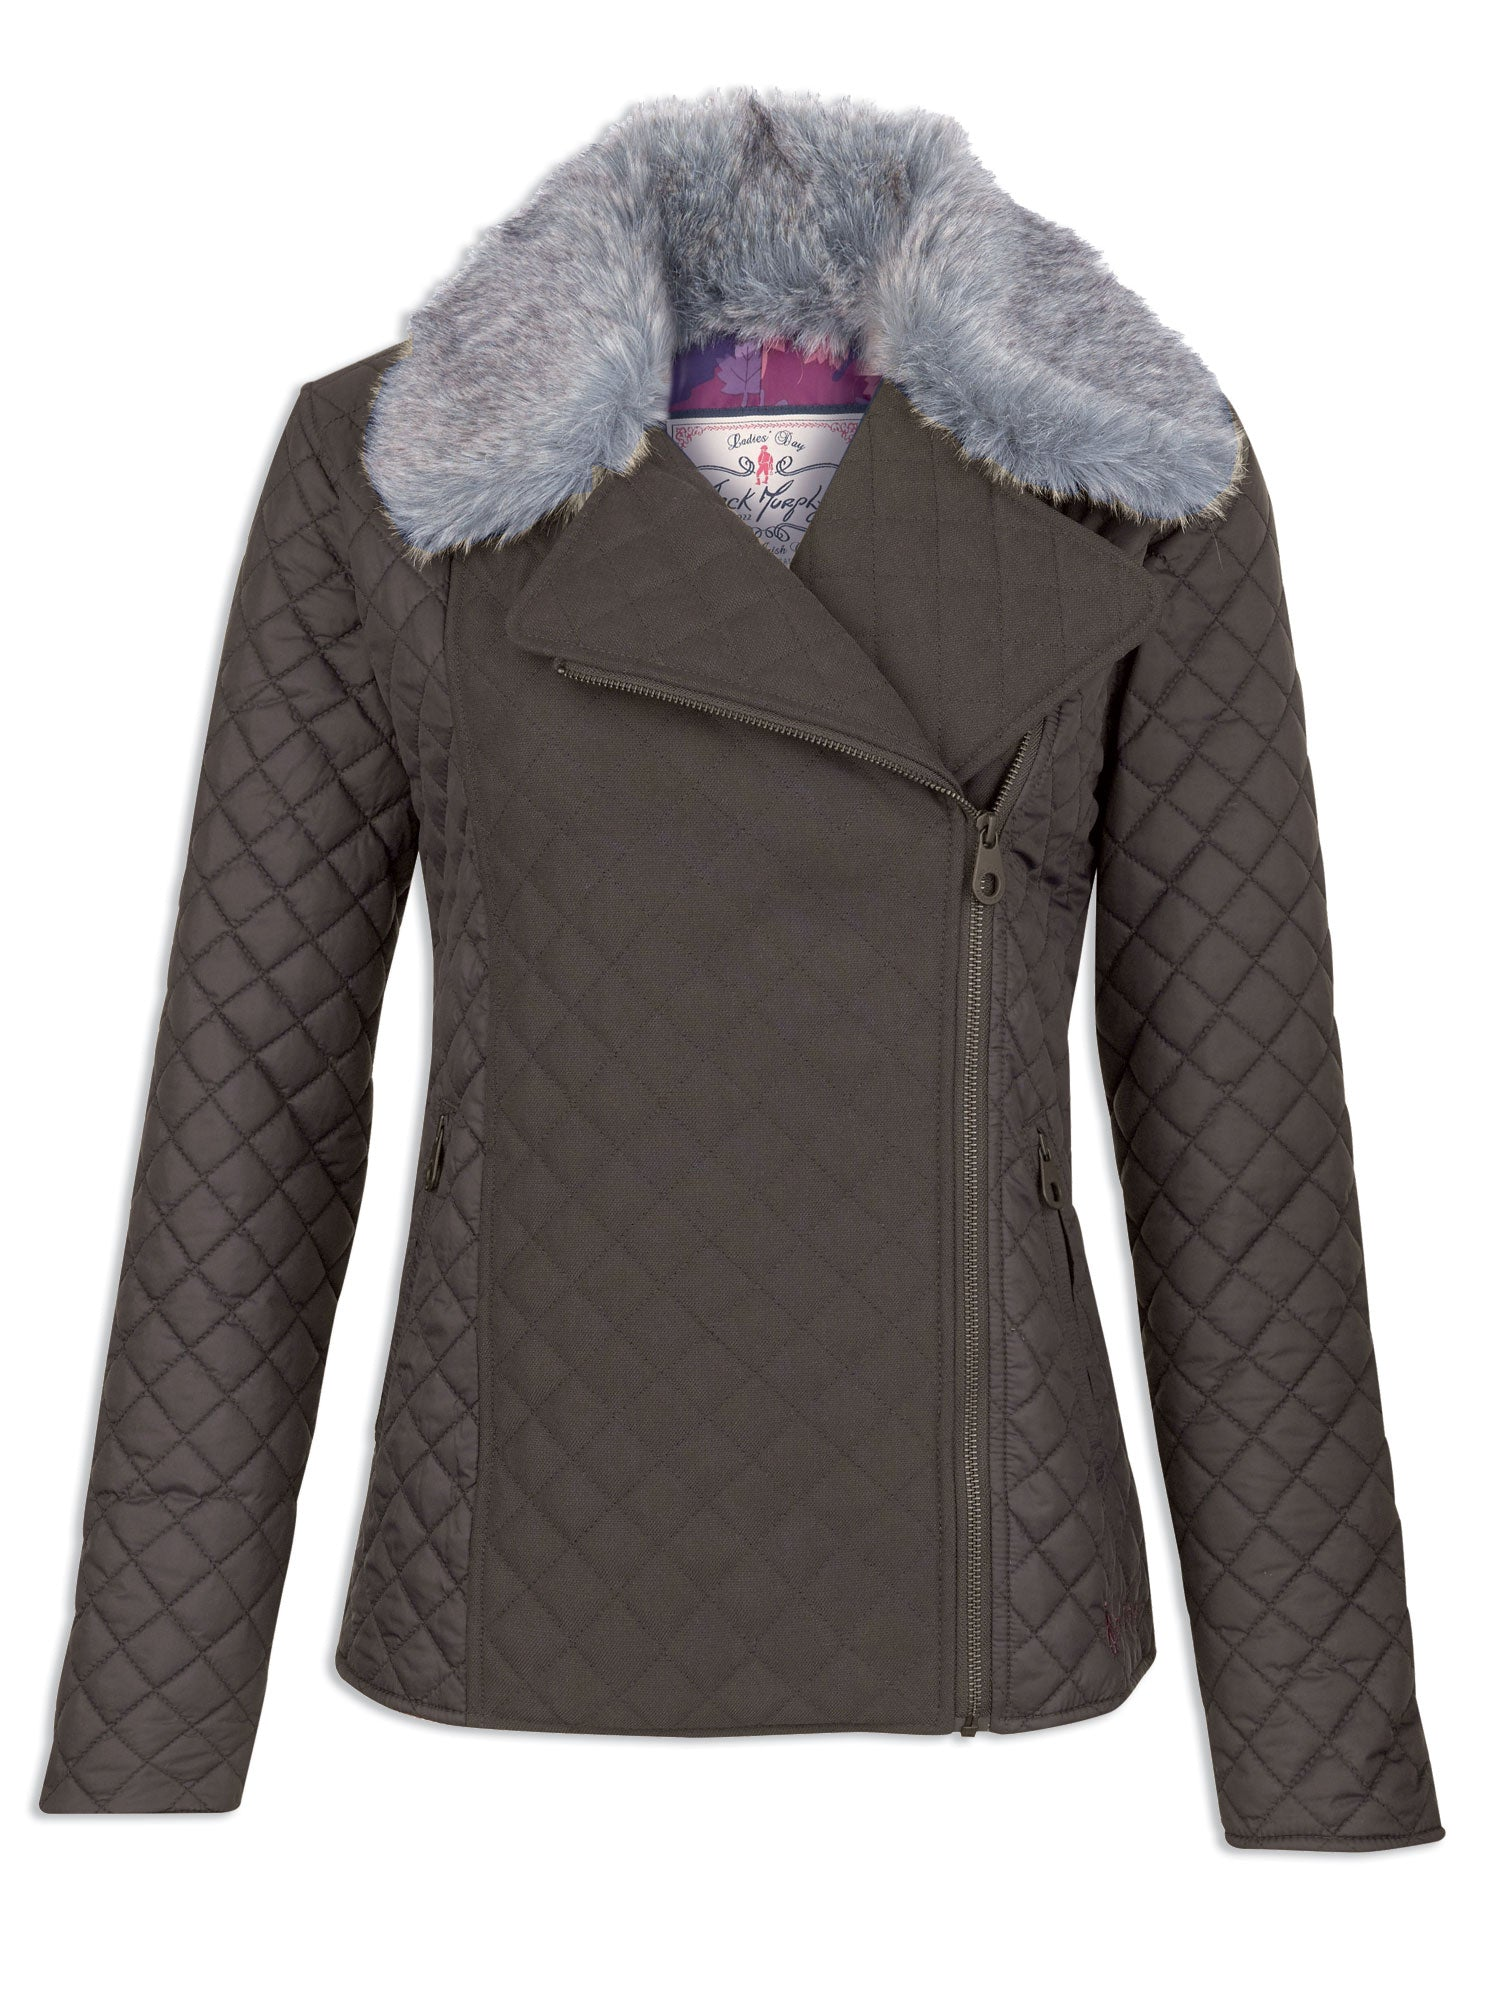 weather for ducks colourJack Murphy Paulina Biker Jacket